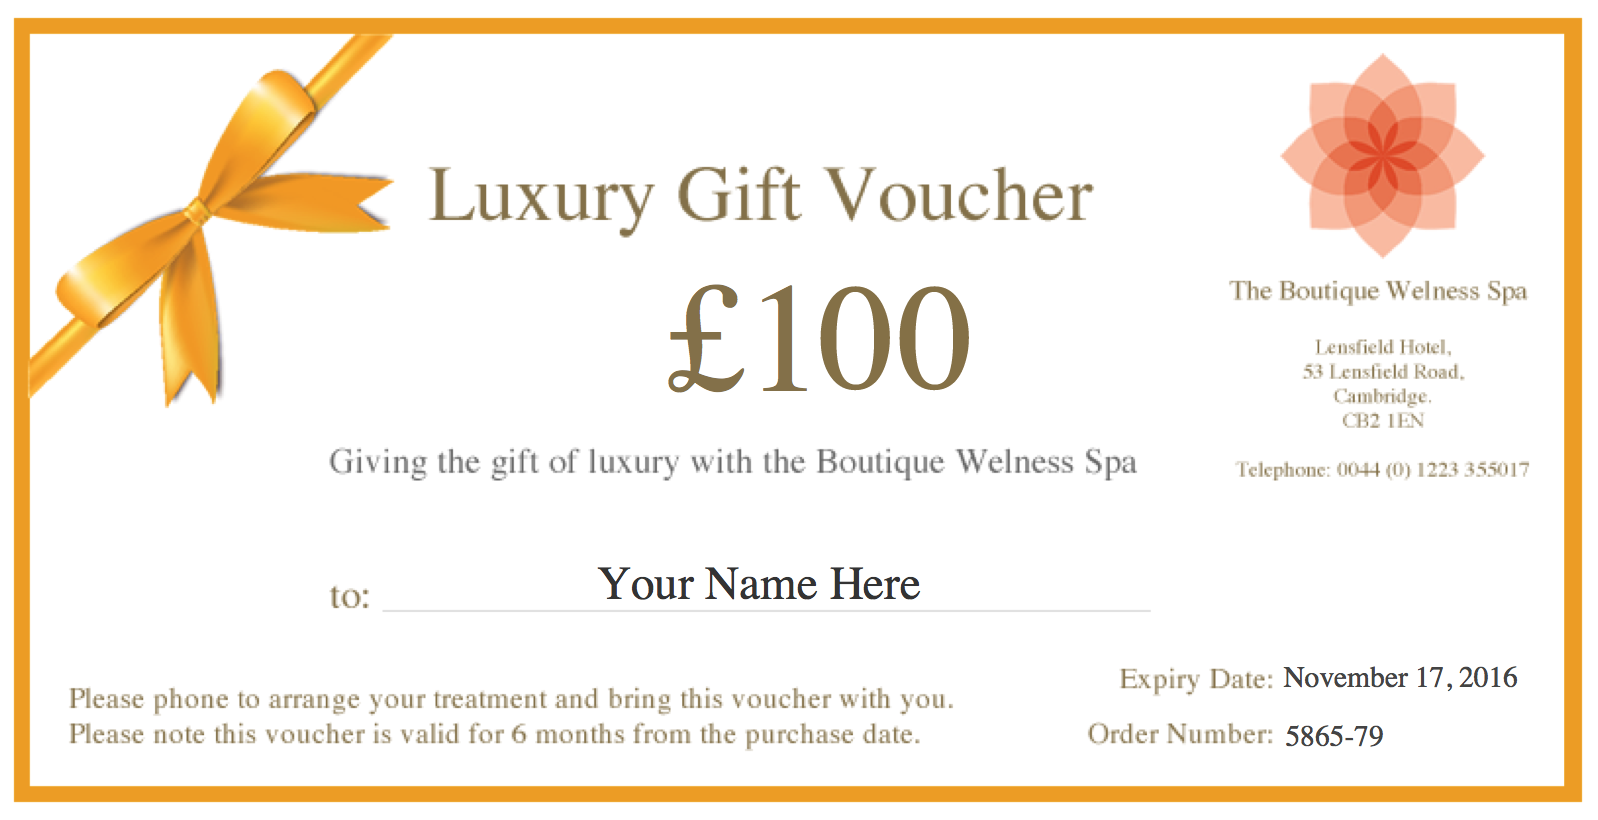 Hotel Break Gift Vouchers Uk